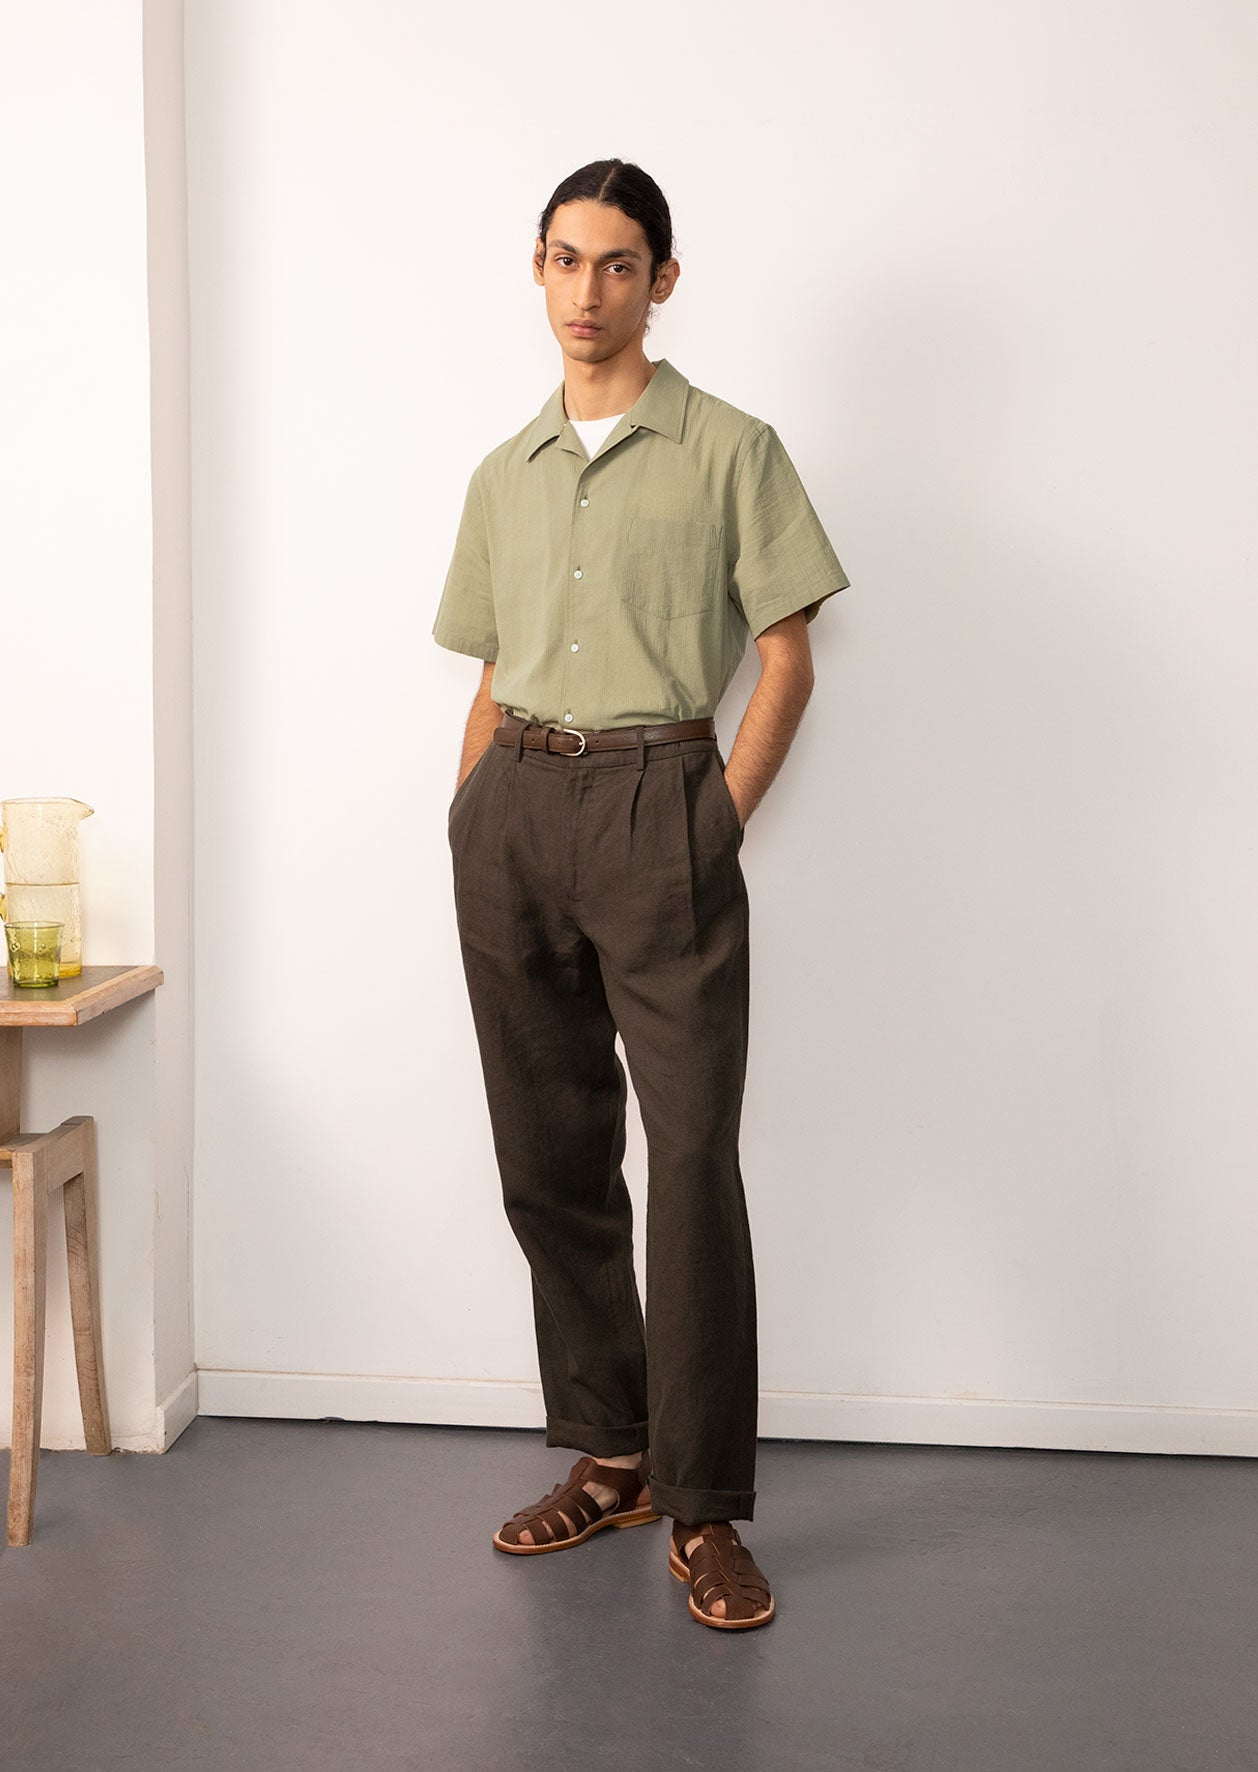 Short sleeve camp collar shirt - Crumpled cotton voile - Sage